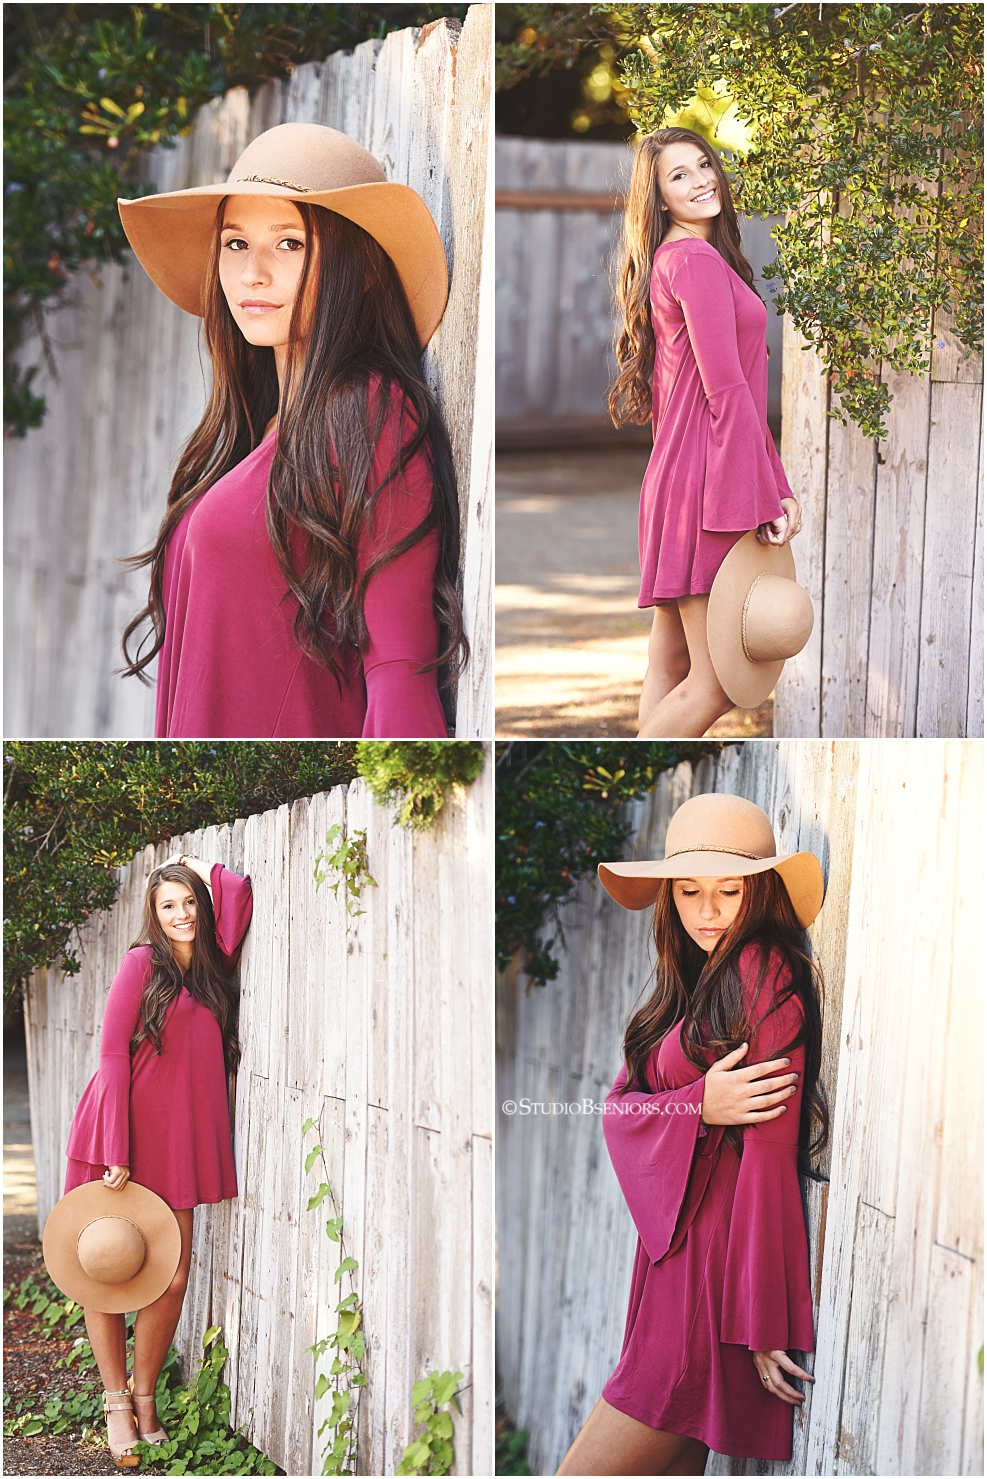 fashion-inspired-senior-pictures-of-girl-in-maroon-dress-and-hat